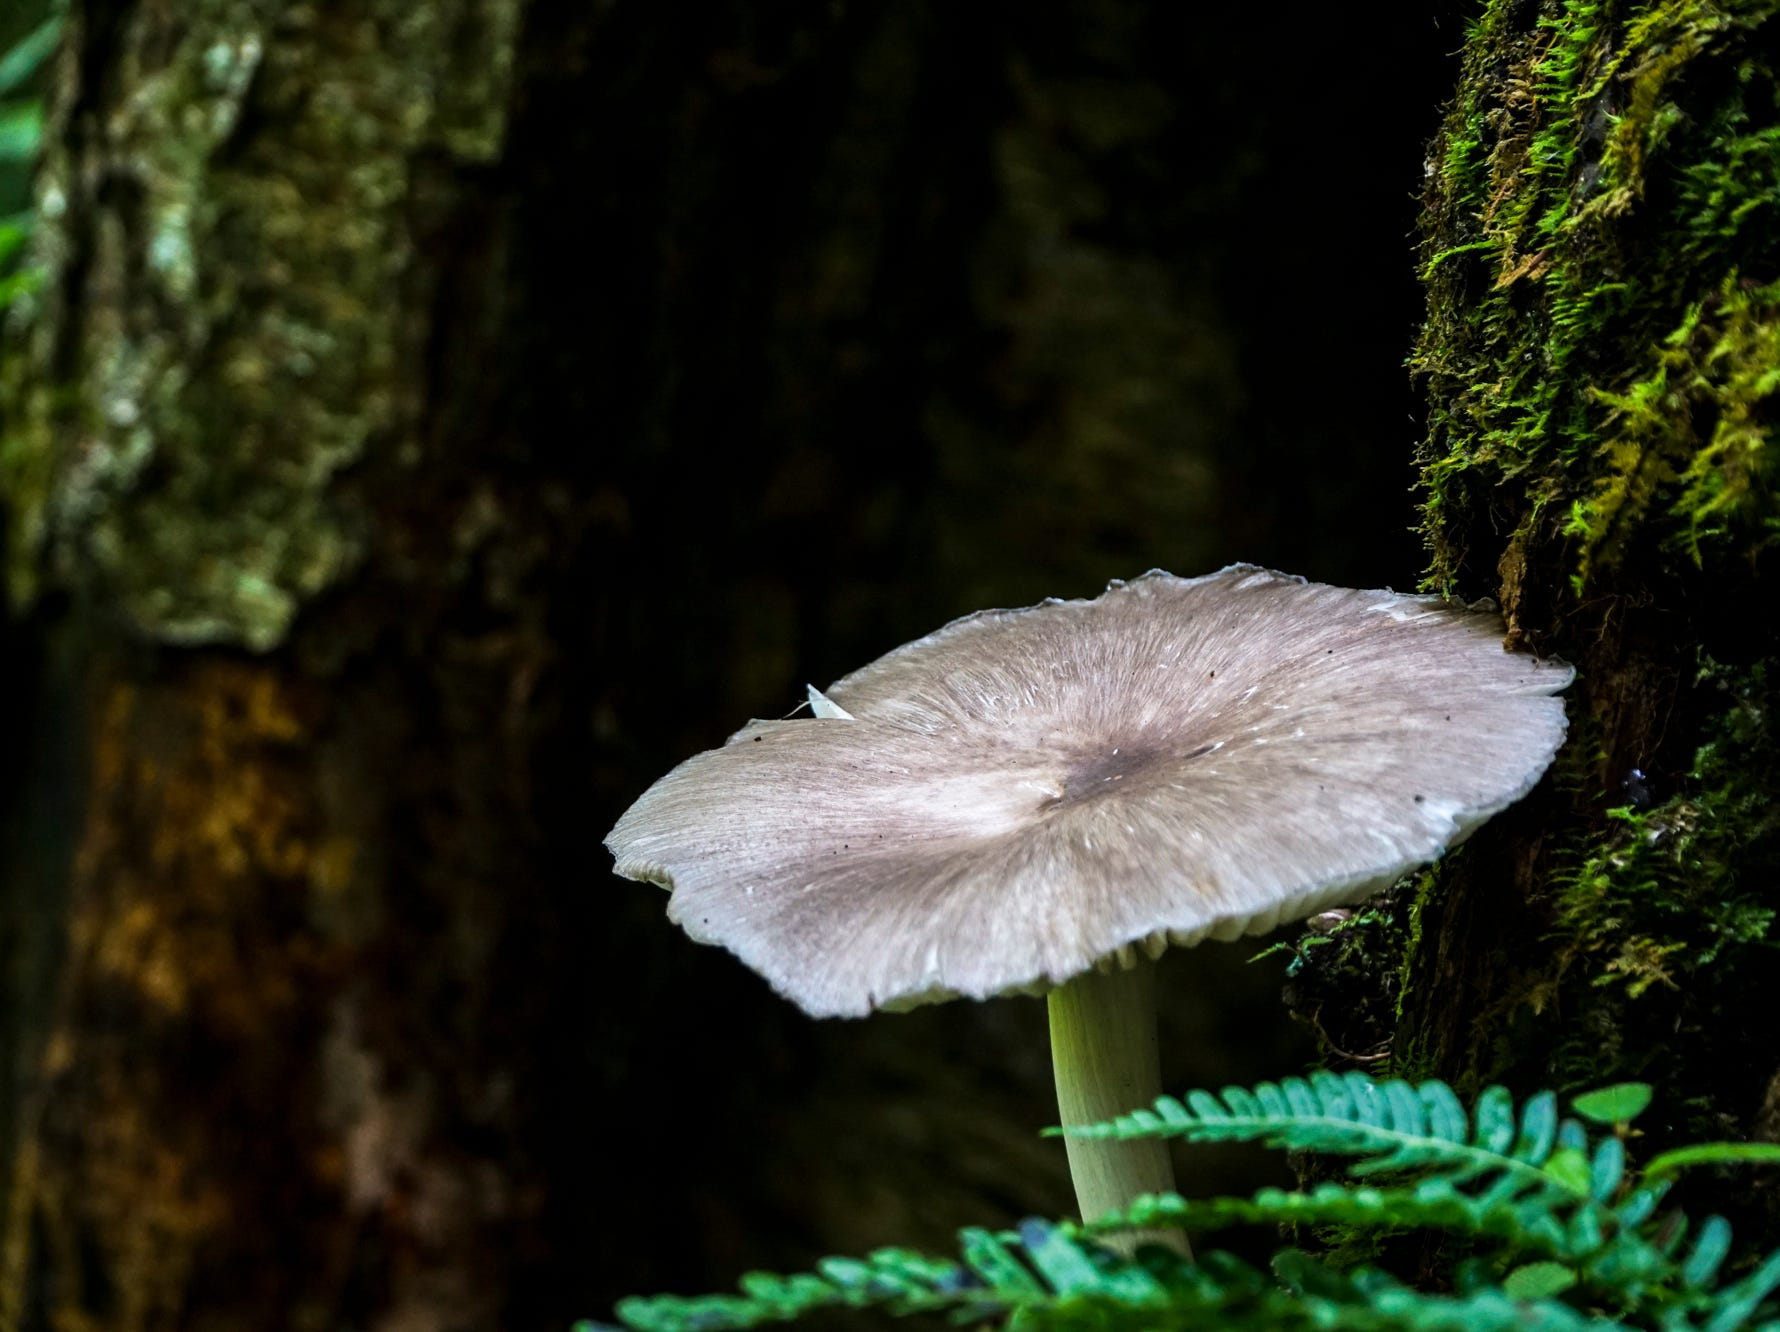 A mushroom grows in a hollow tree trunk along the Chimney Tops trail in the Great Smoky Mountains National Park.